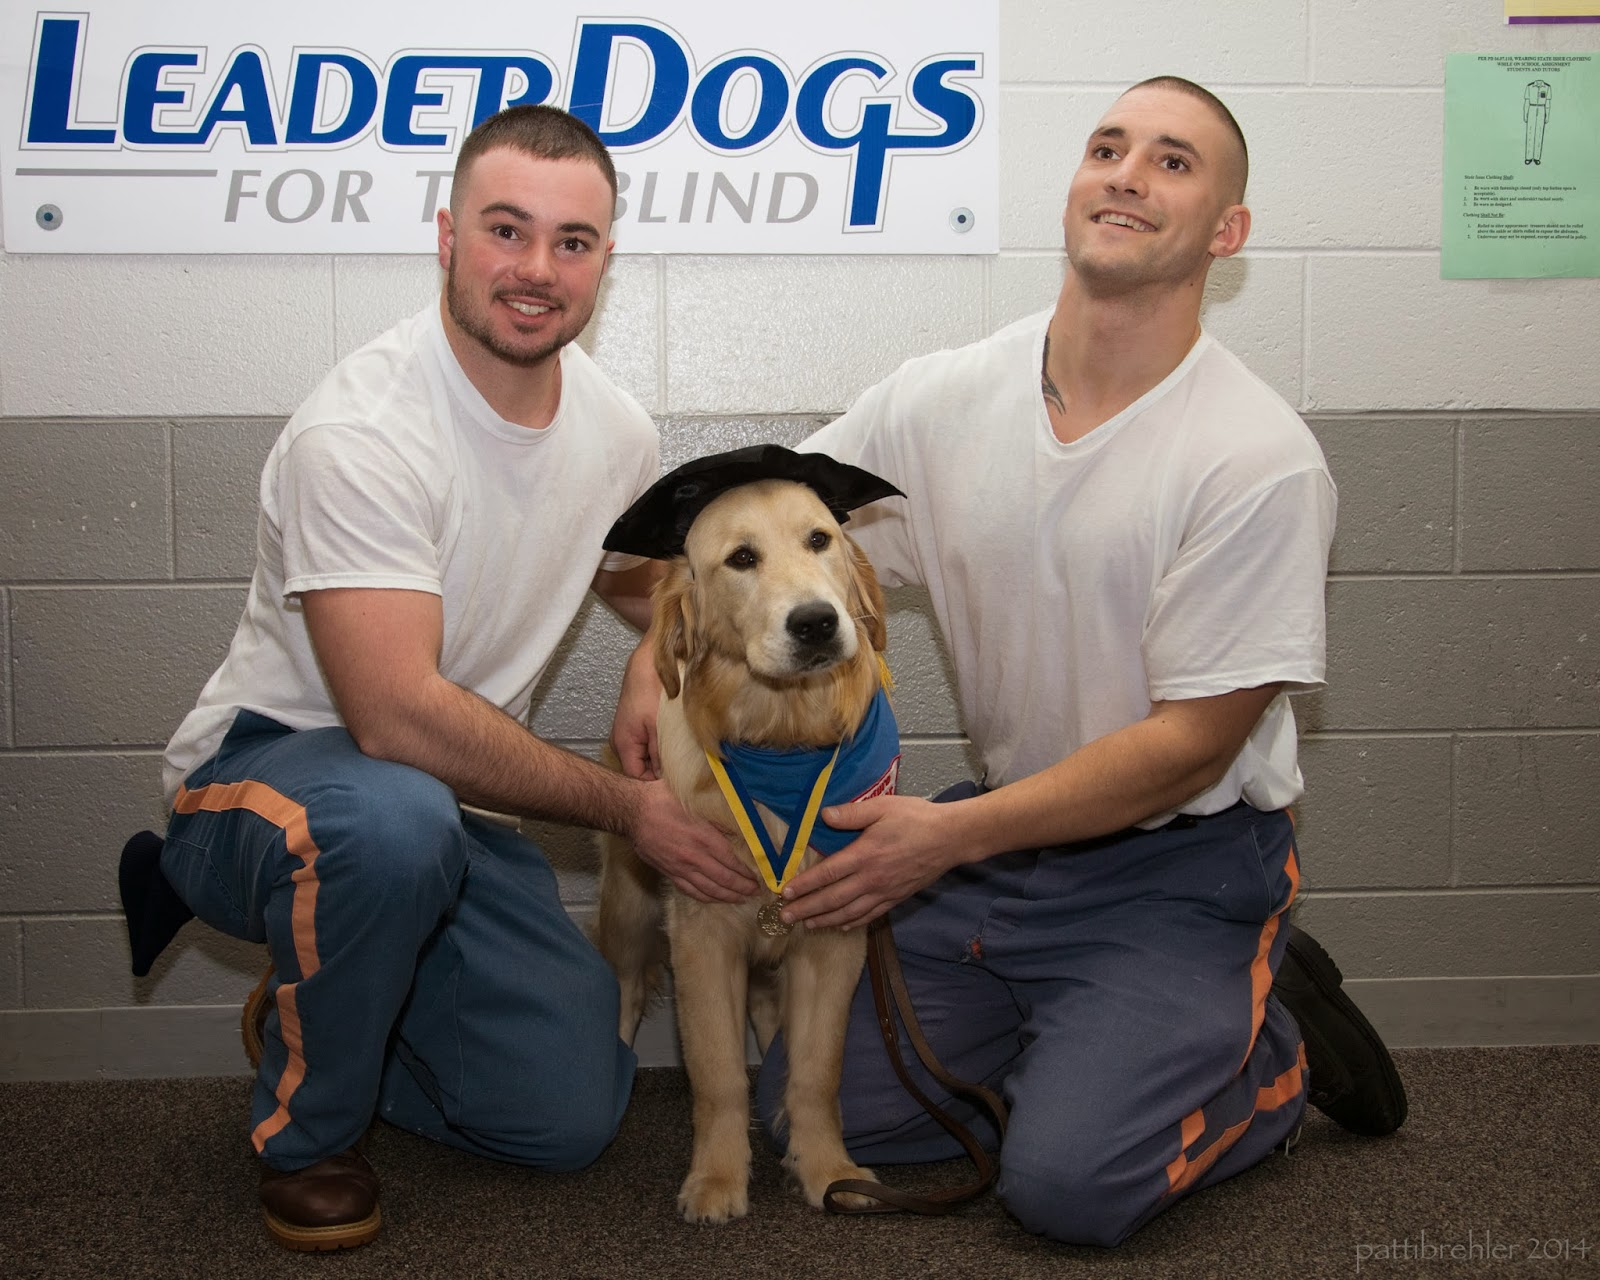 The same two men are kneeling on either side of the golden retriever, who is now wearing the black graduation hat.